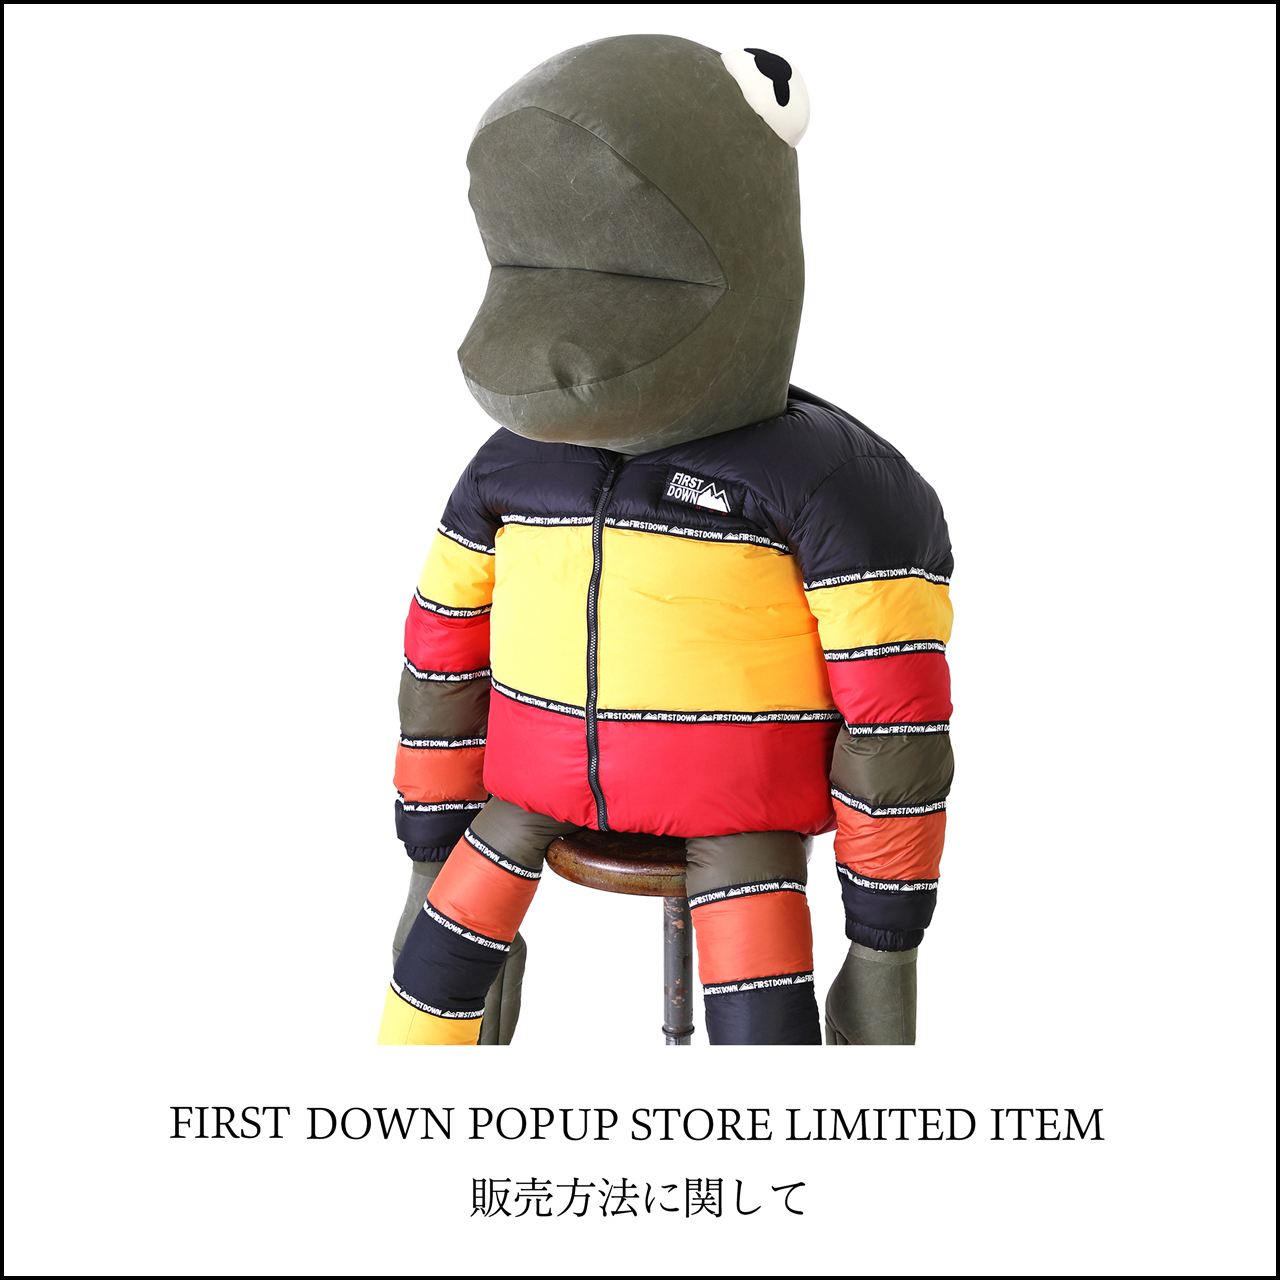 <FIRST DOWN POPUP STORE> LIMITED ITEM 販売方法に関して